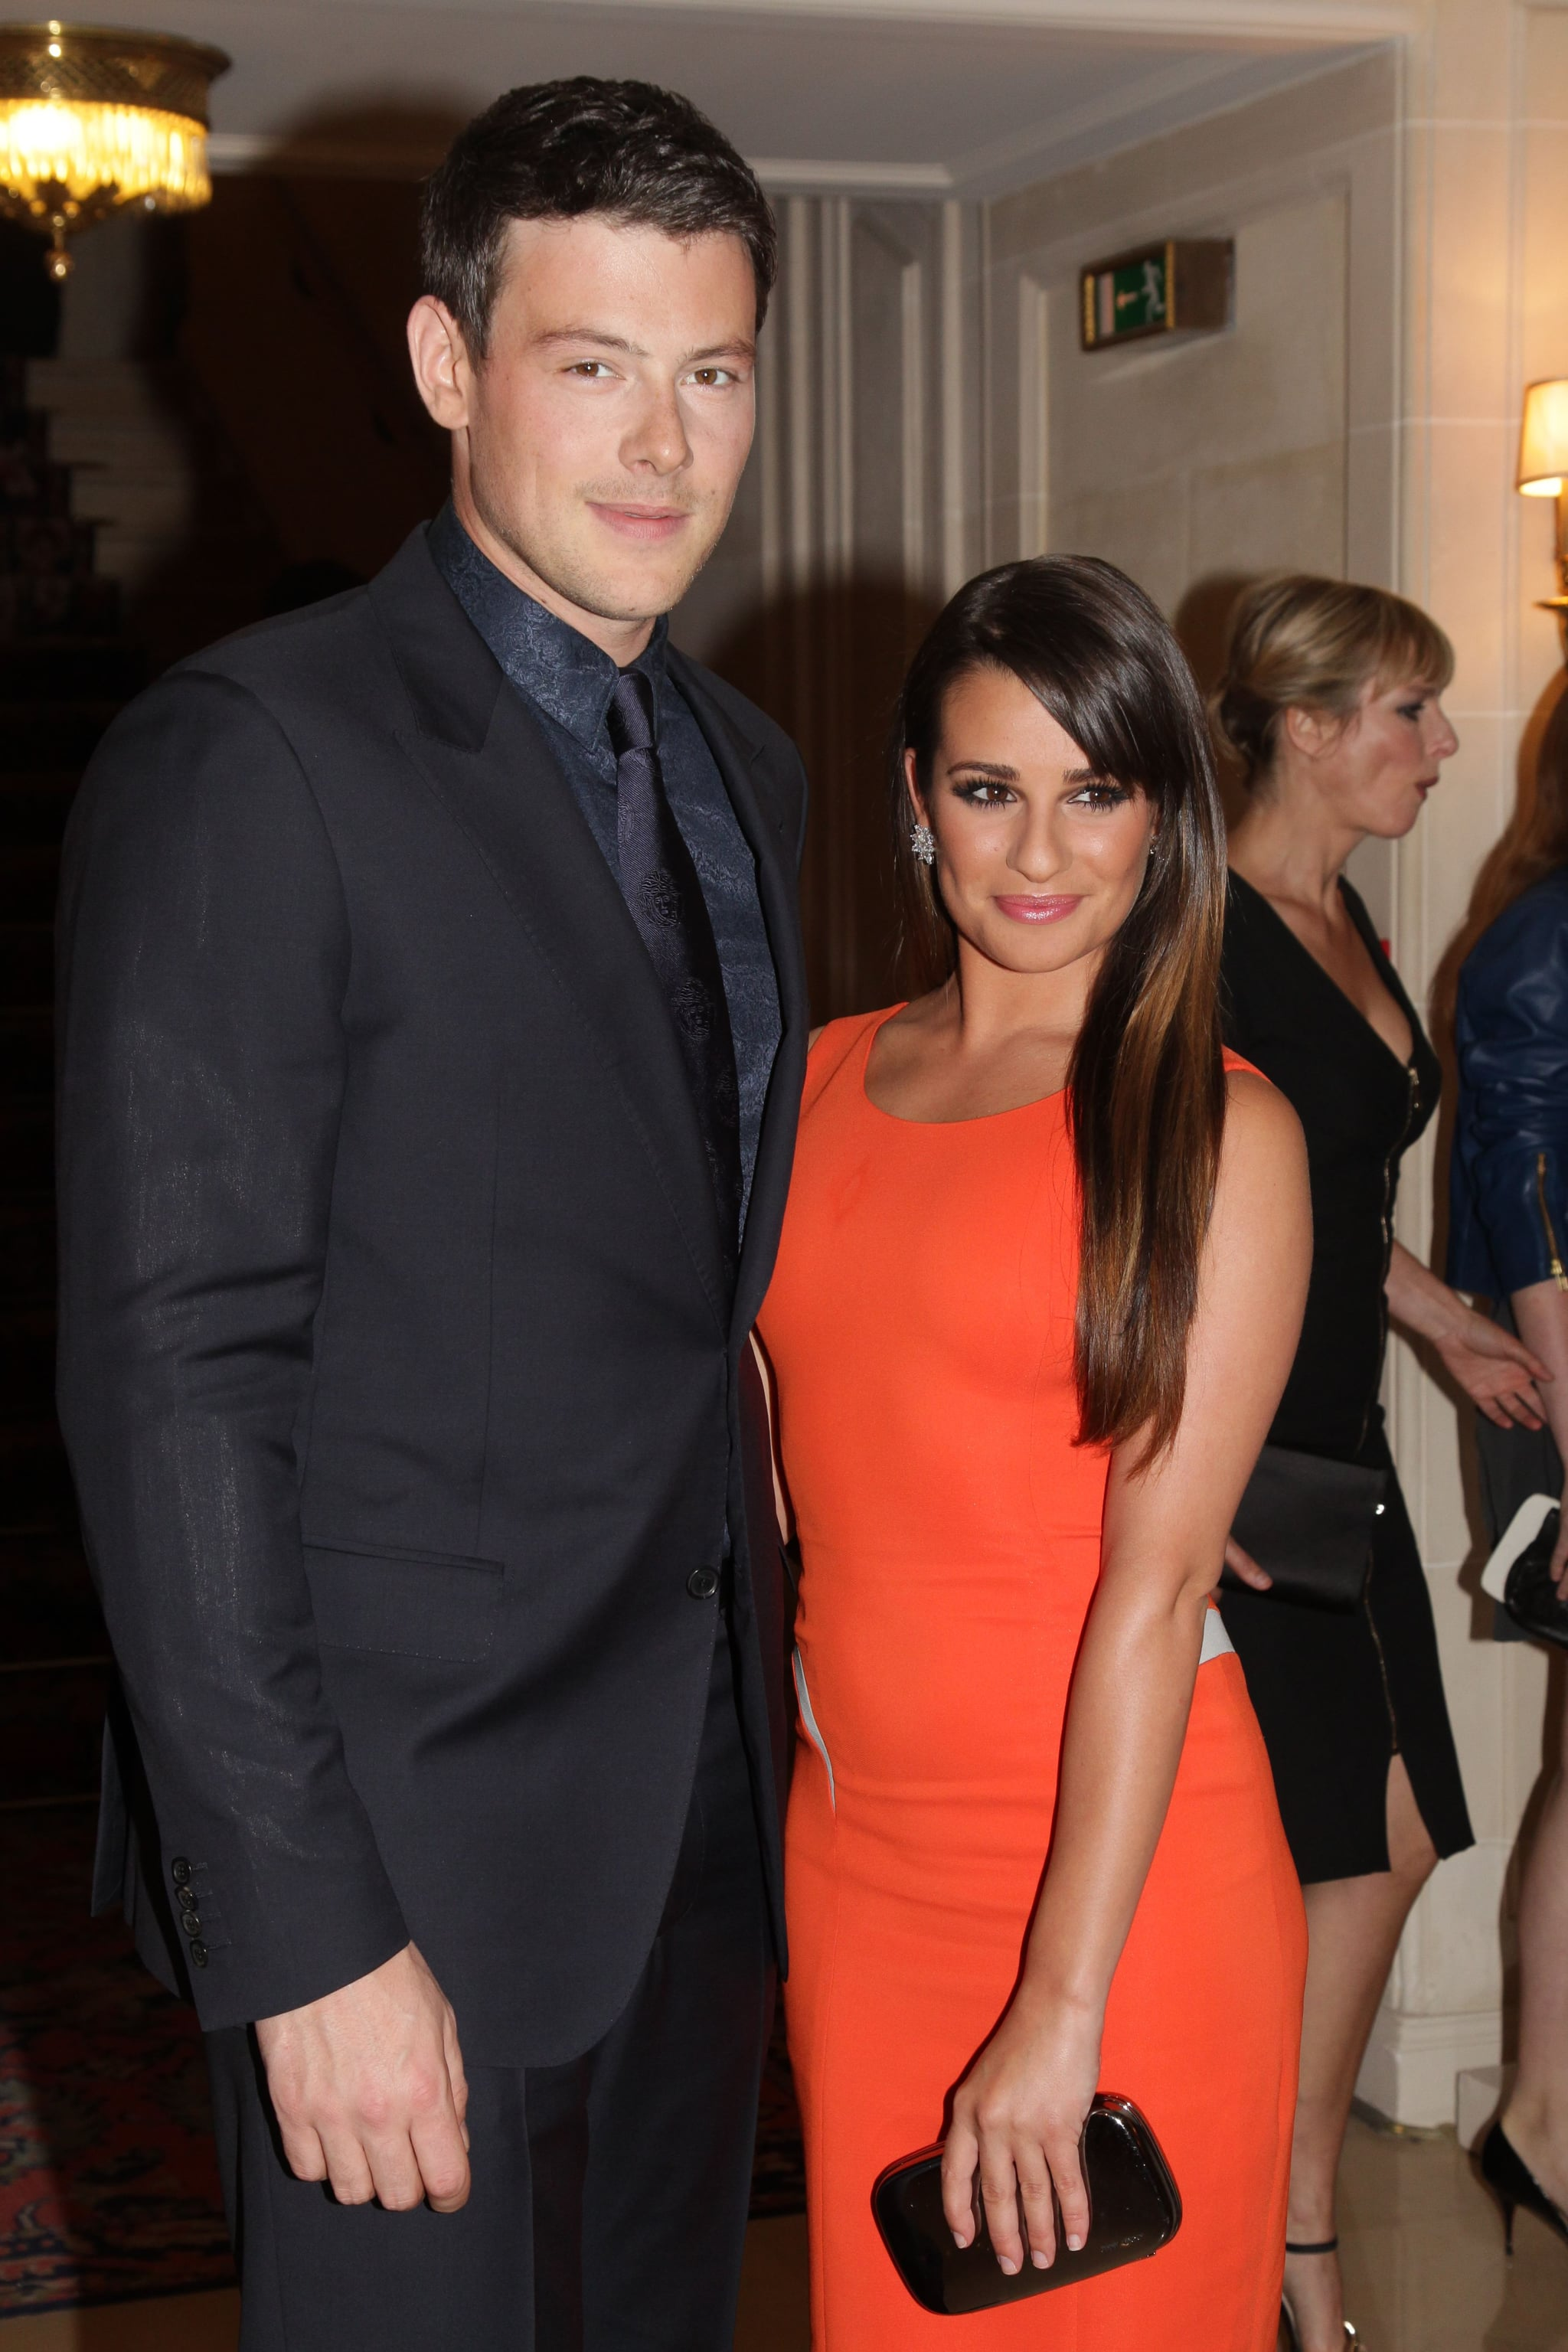 Lea Michele posed with Cory Monteith at the Versace show for Paris Fashion Week.